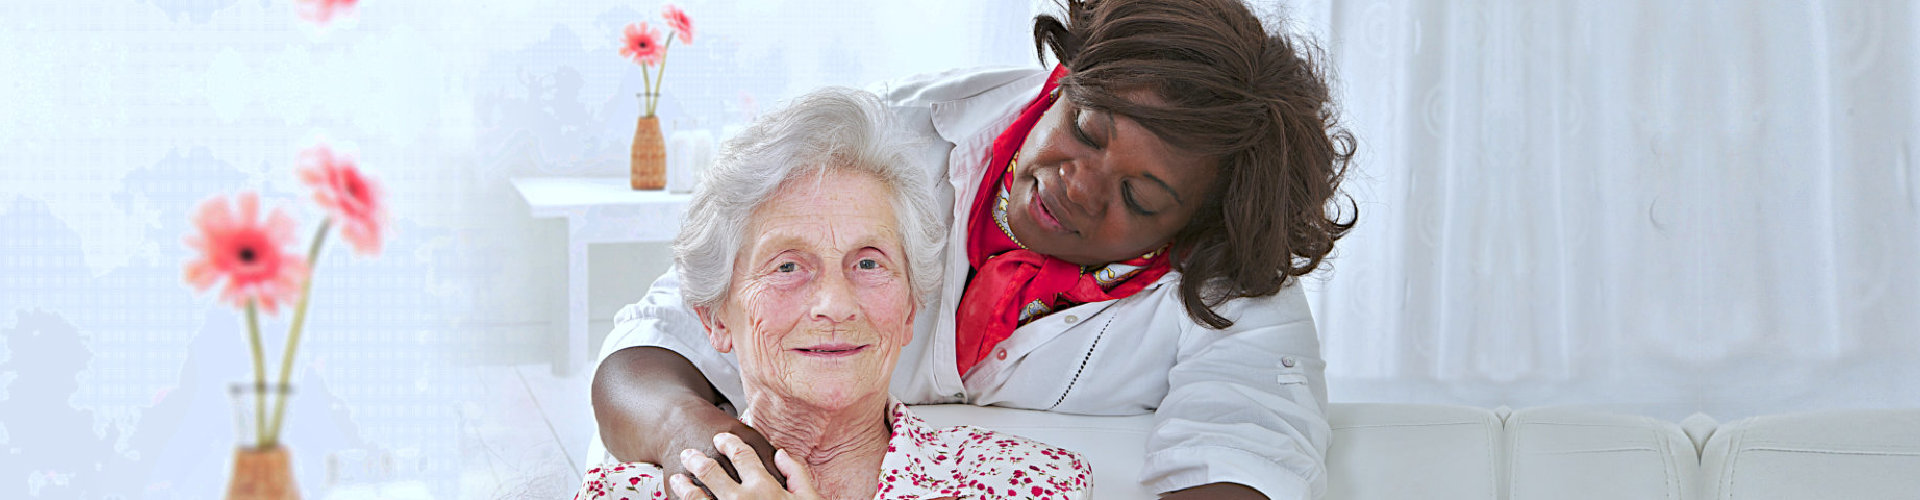 senior woman smiling while her caregiver watching